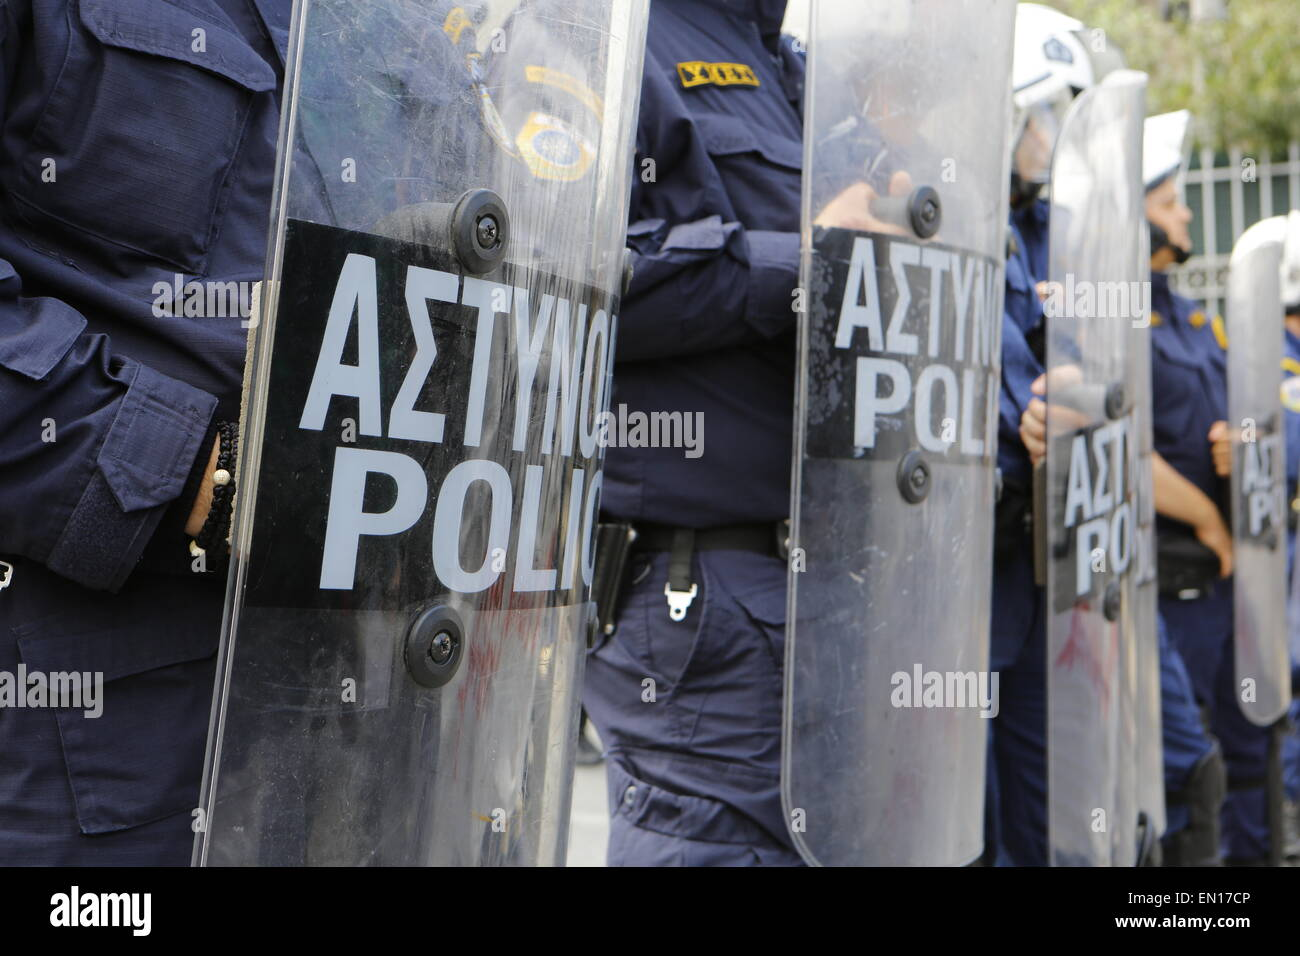 Athens, Greece. 25th Apr, 2015. Close-up of Riot Police officers outside the Ministry of Public Order. Pro-immigration - Stock Image